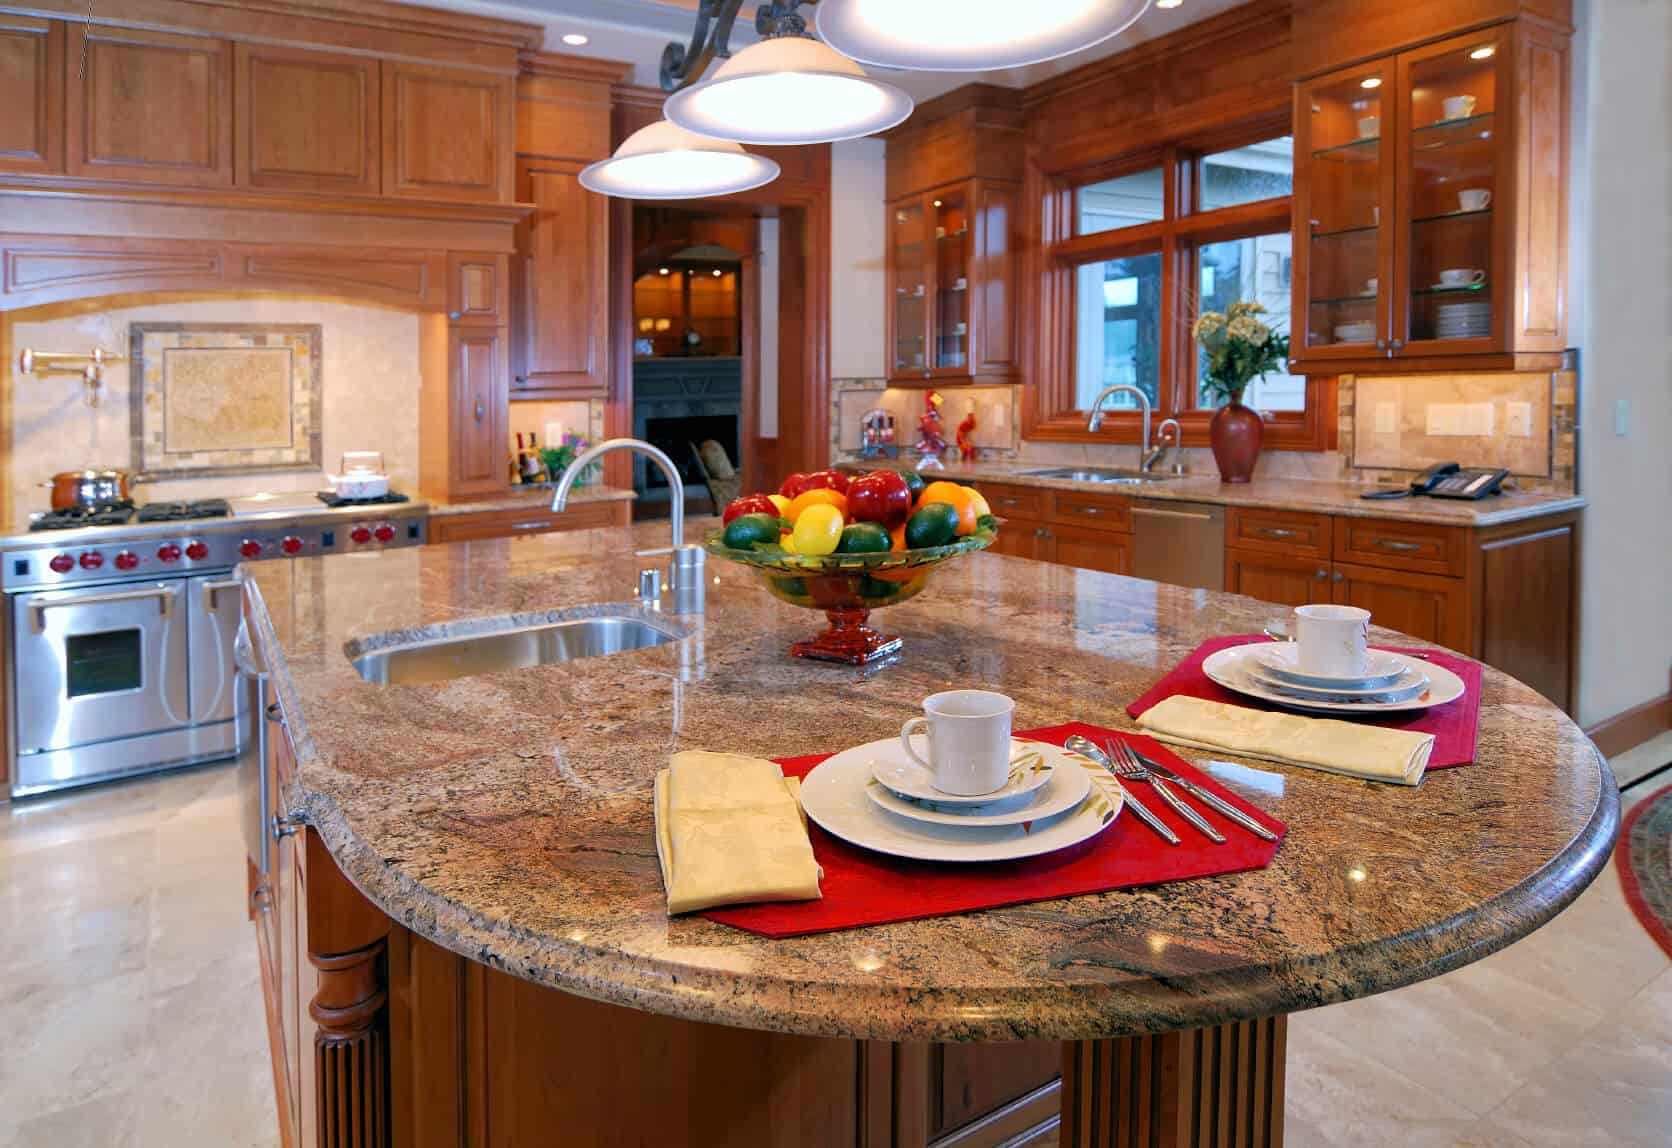 Rich Patterned Marble Countertop Extends To Round Dining E On This Natural Wood Island